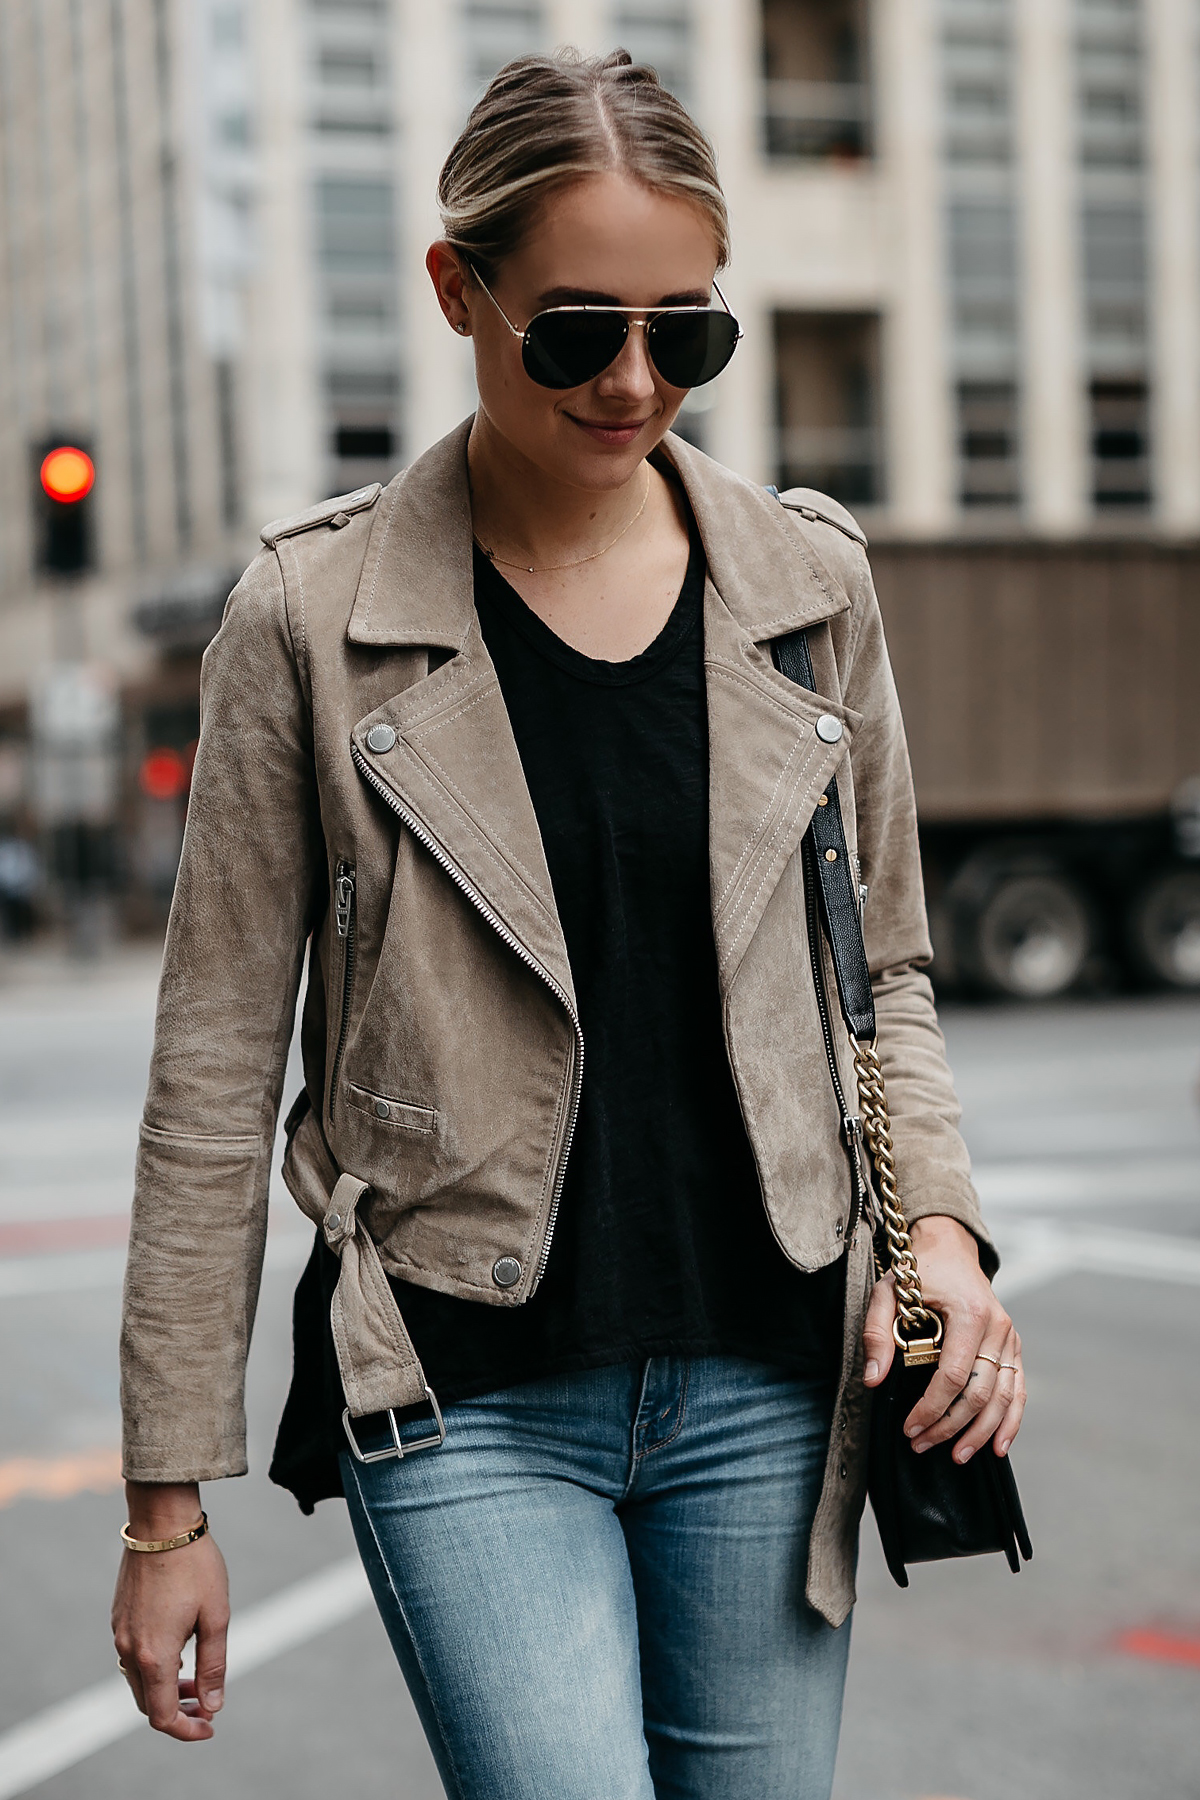 Blonde Woman Wearing Blanknyc Tan Suede Moto Jacket Black Tshirt Aviator Sunglasses Fashion Jackson Dallas Blogger Fashion Blogger Street Style